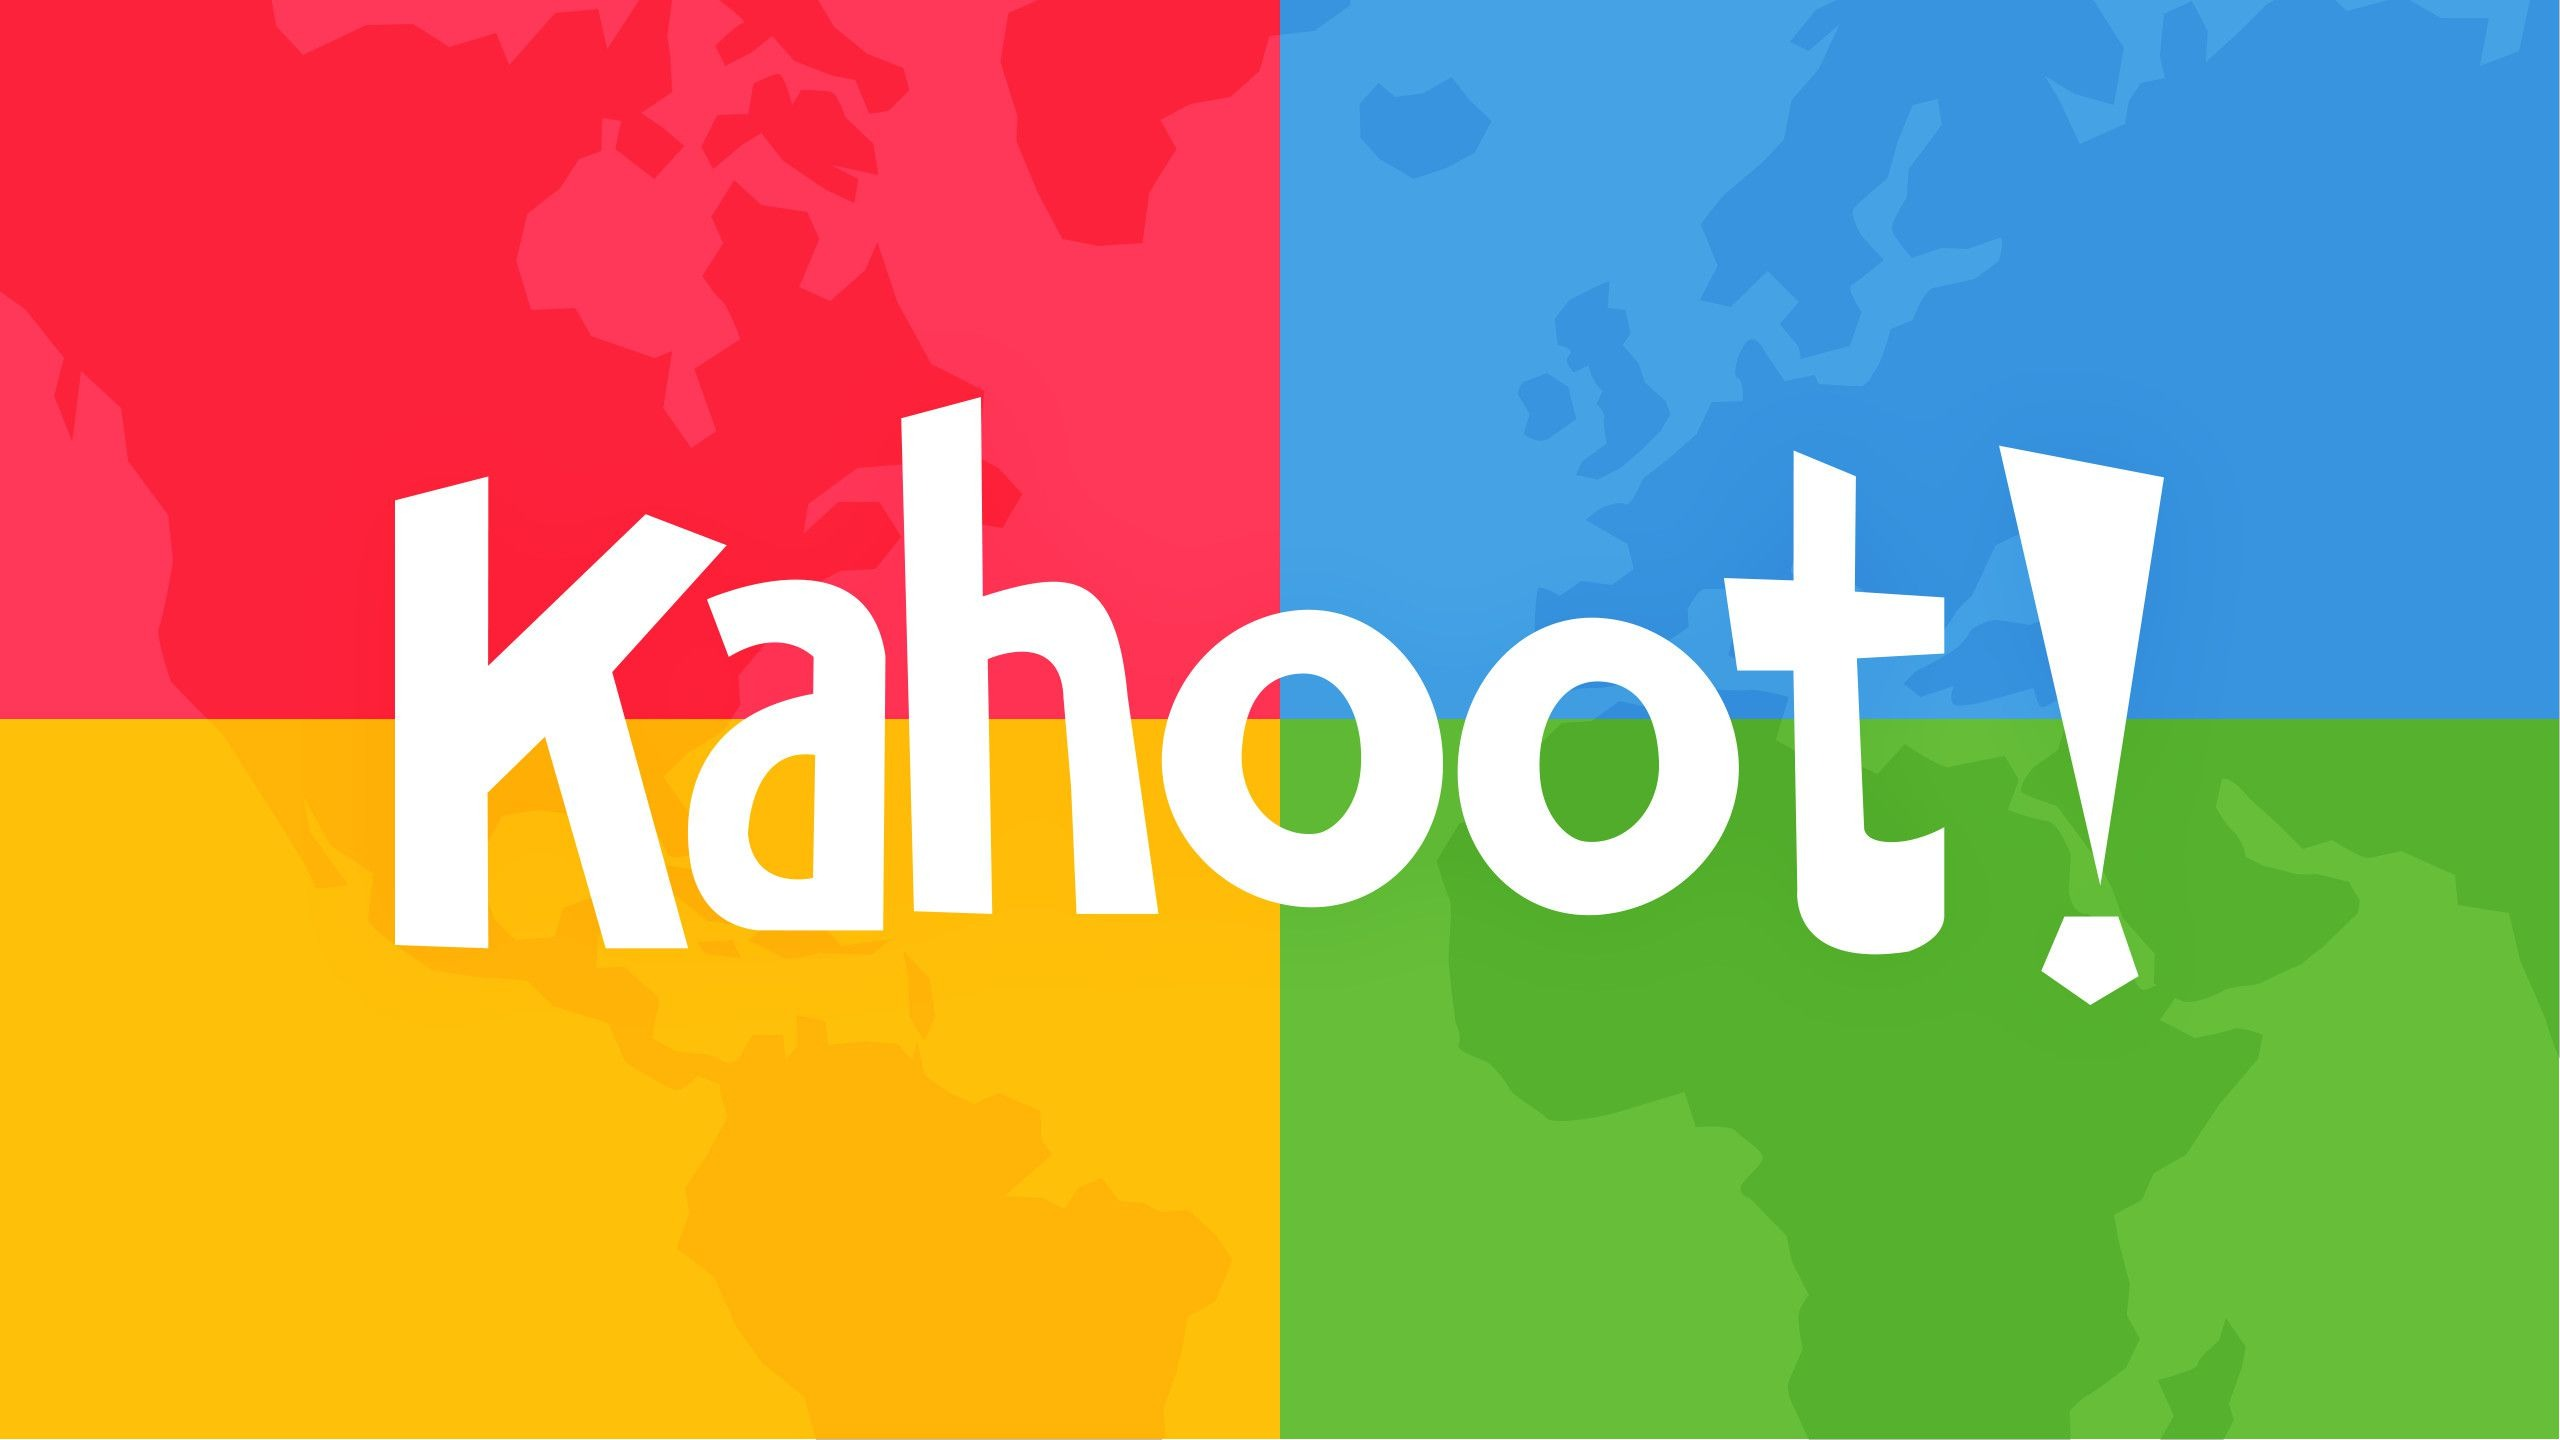 Kahoot Login - Sign In, Sign Up, Create Account For Teachers & Students